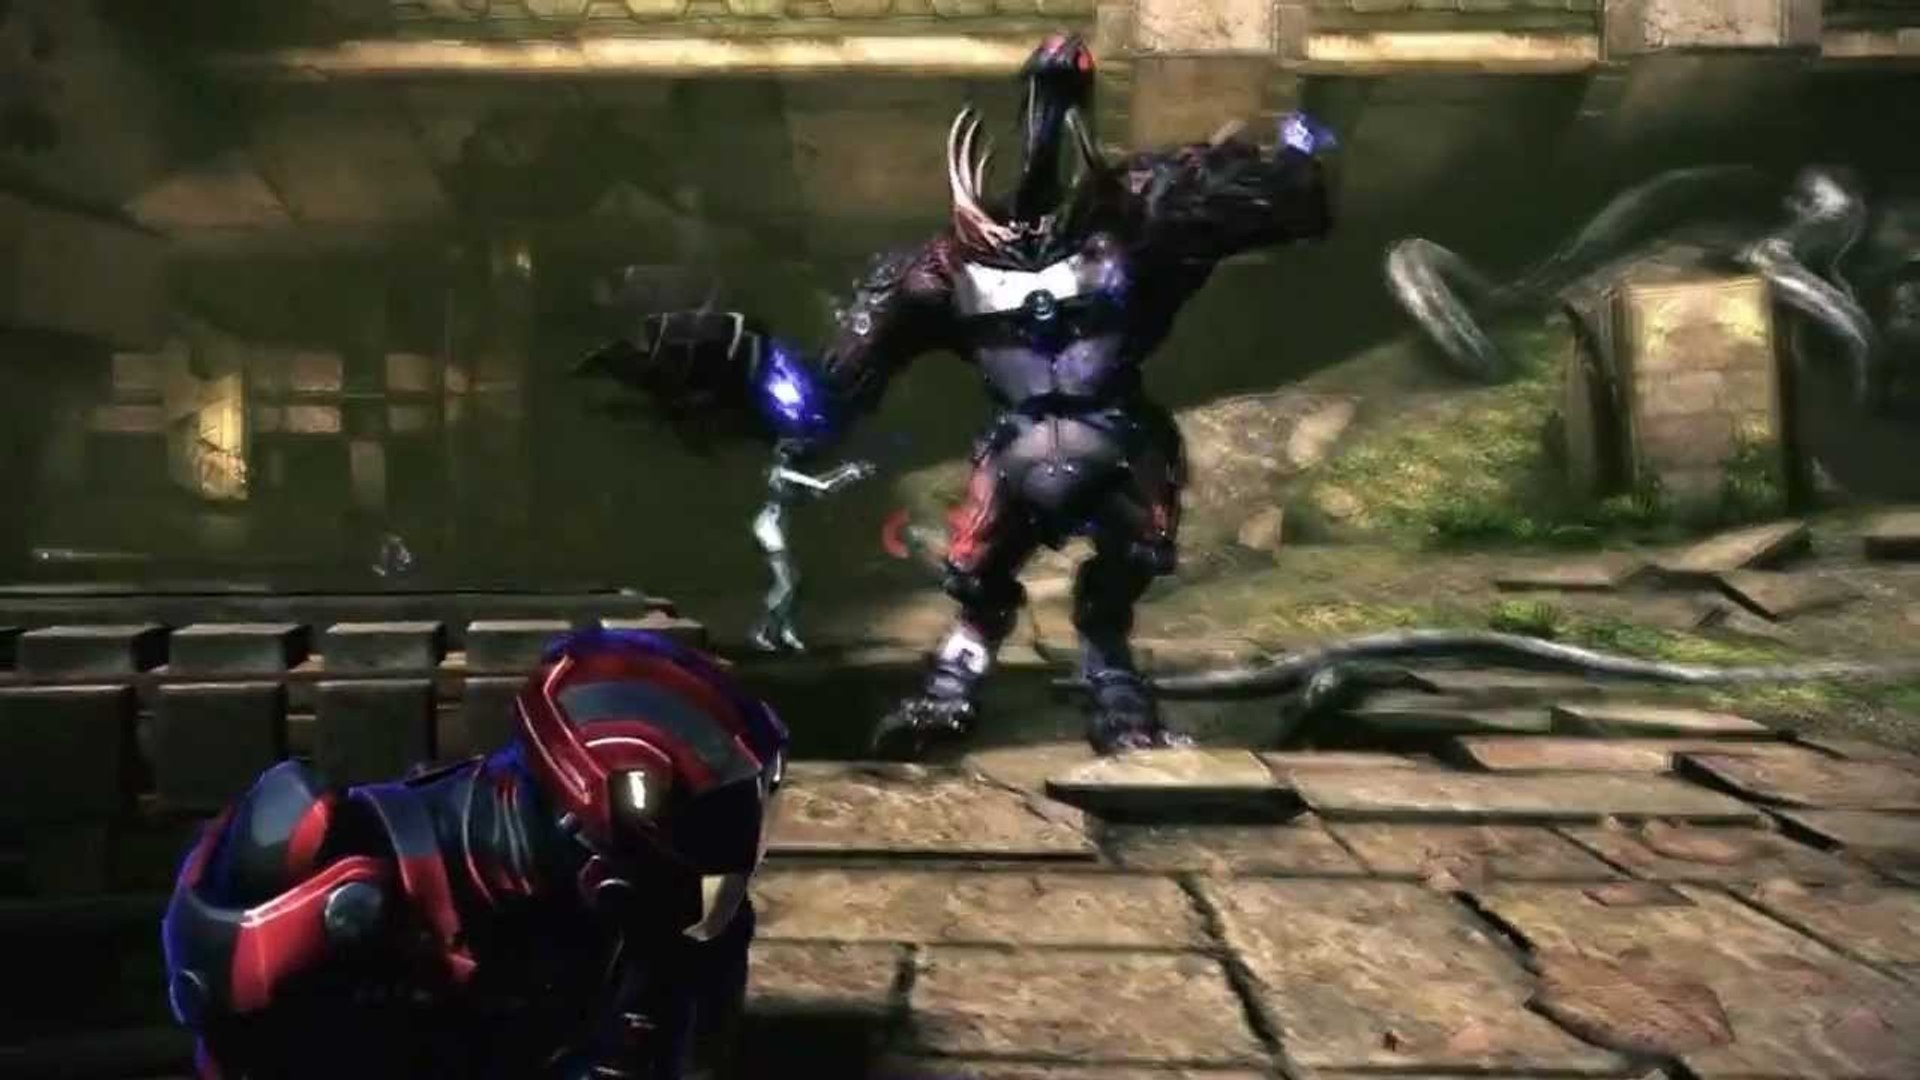 Mass Effect 3 Insanity Difficulty Singleplayer Guide: Curing the Genophage